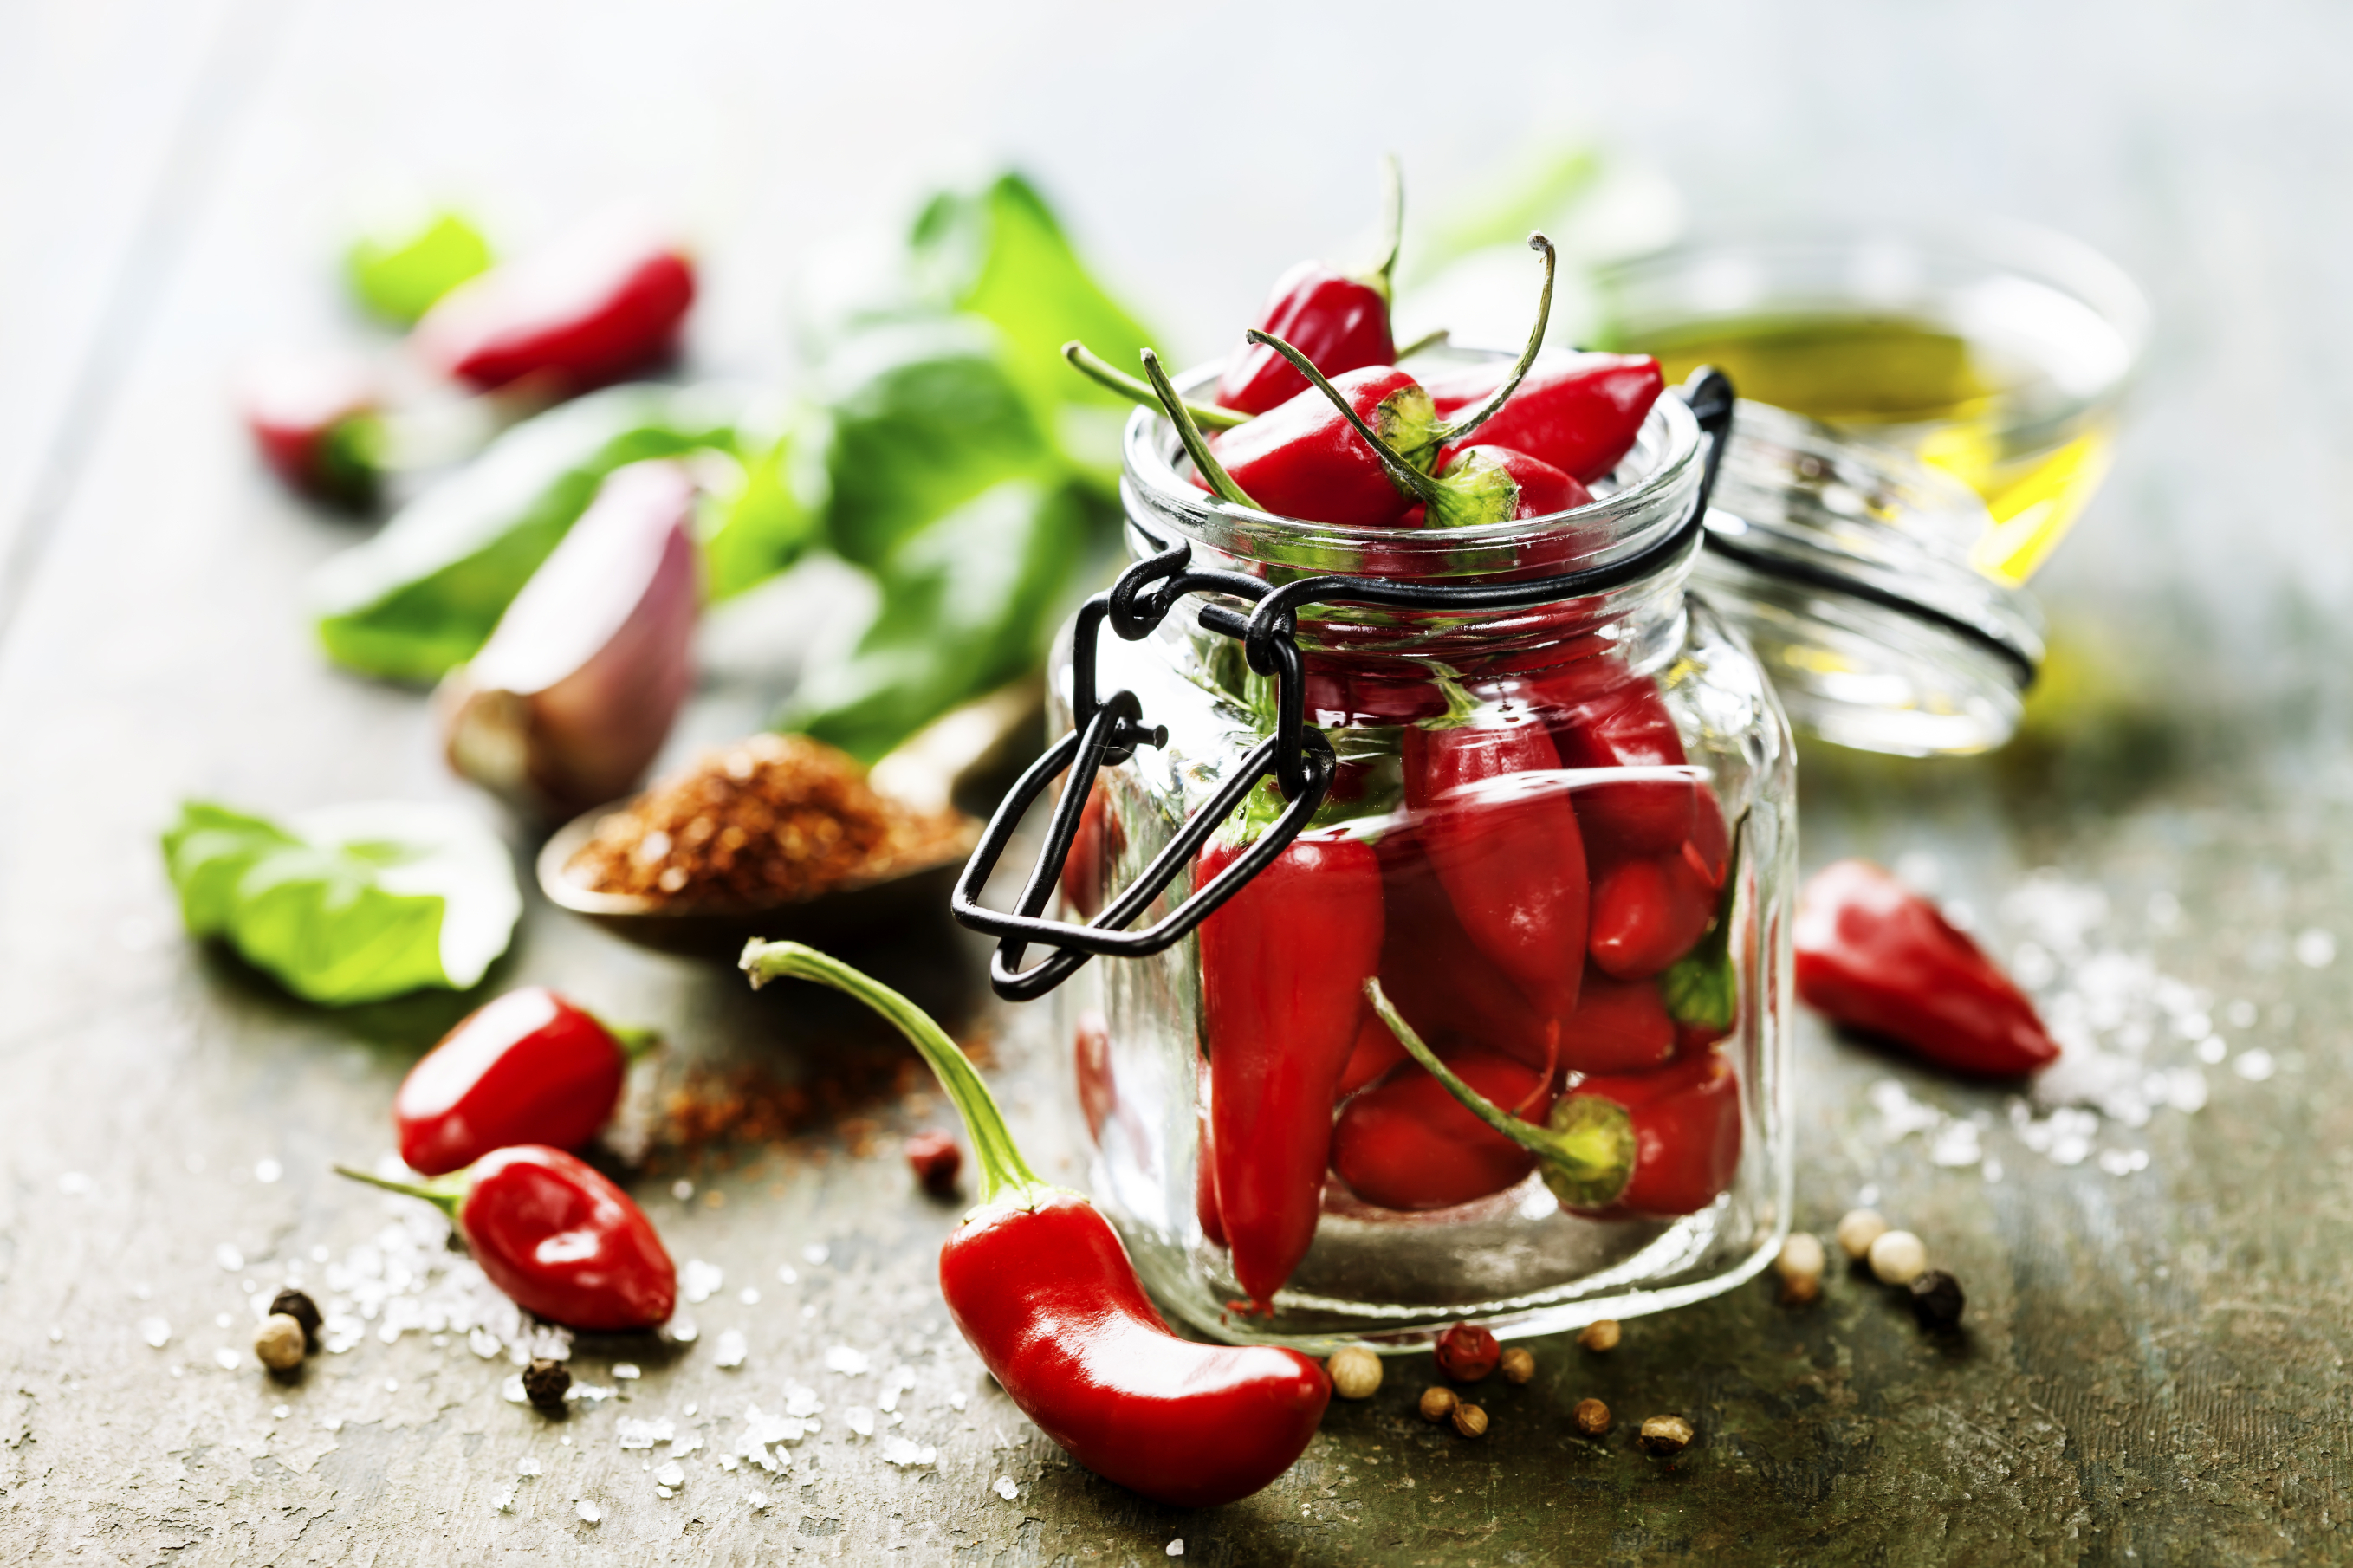 Hot Peppers: Your Weight Loss Allies